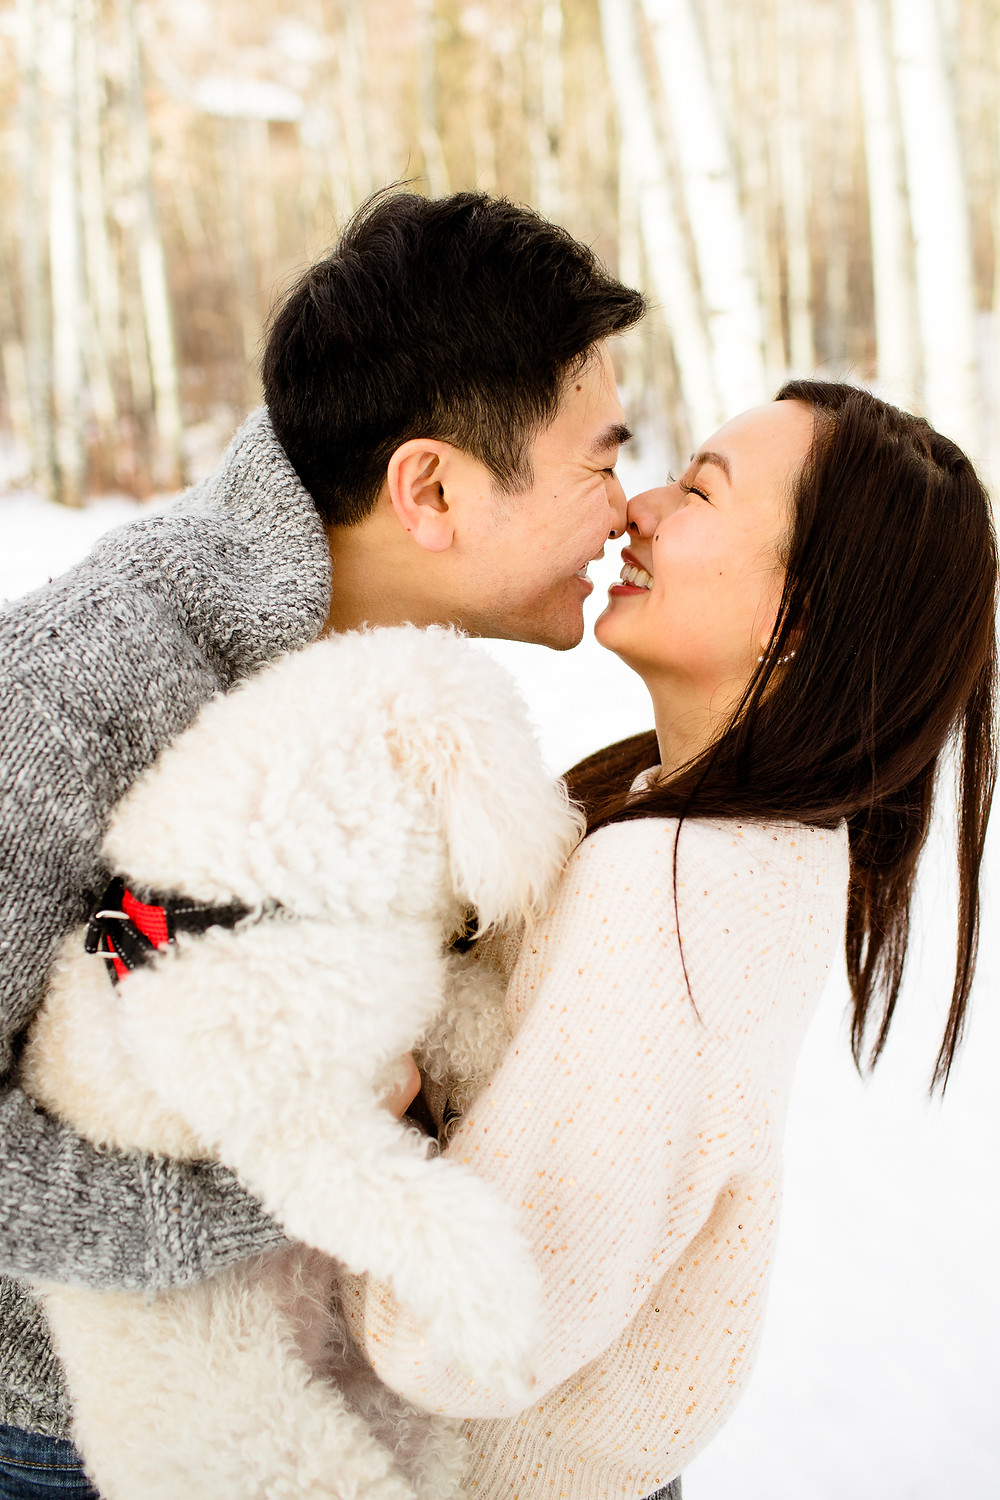 man and woman nuzzling in park city utah